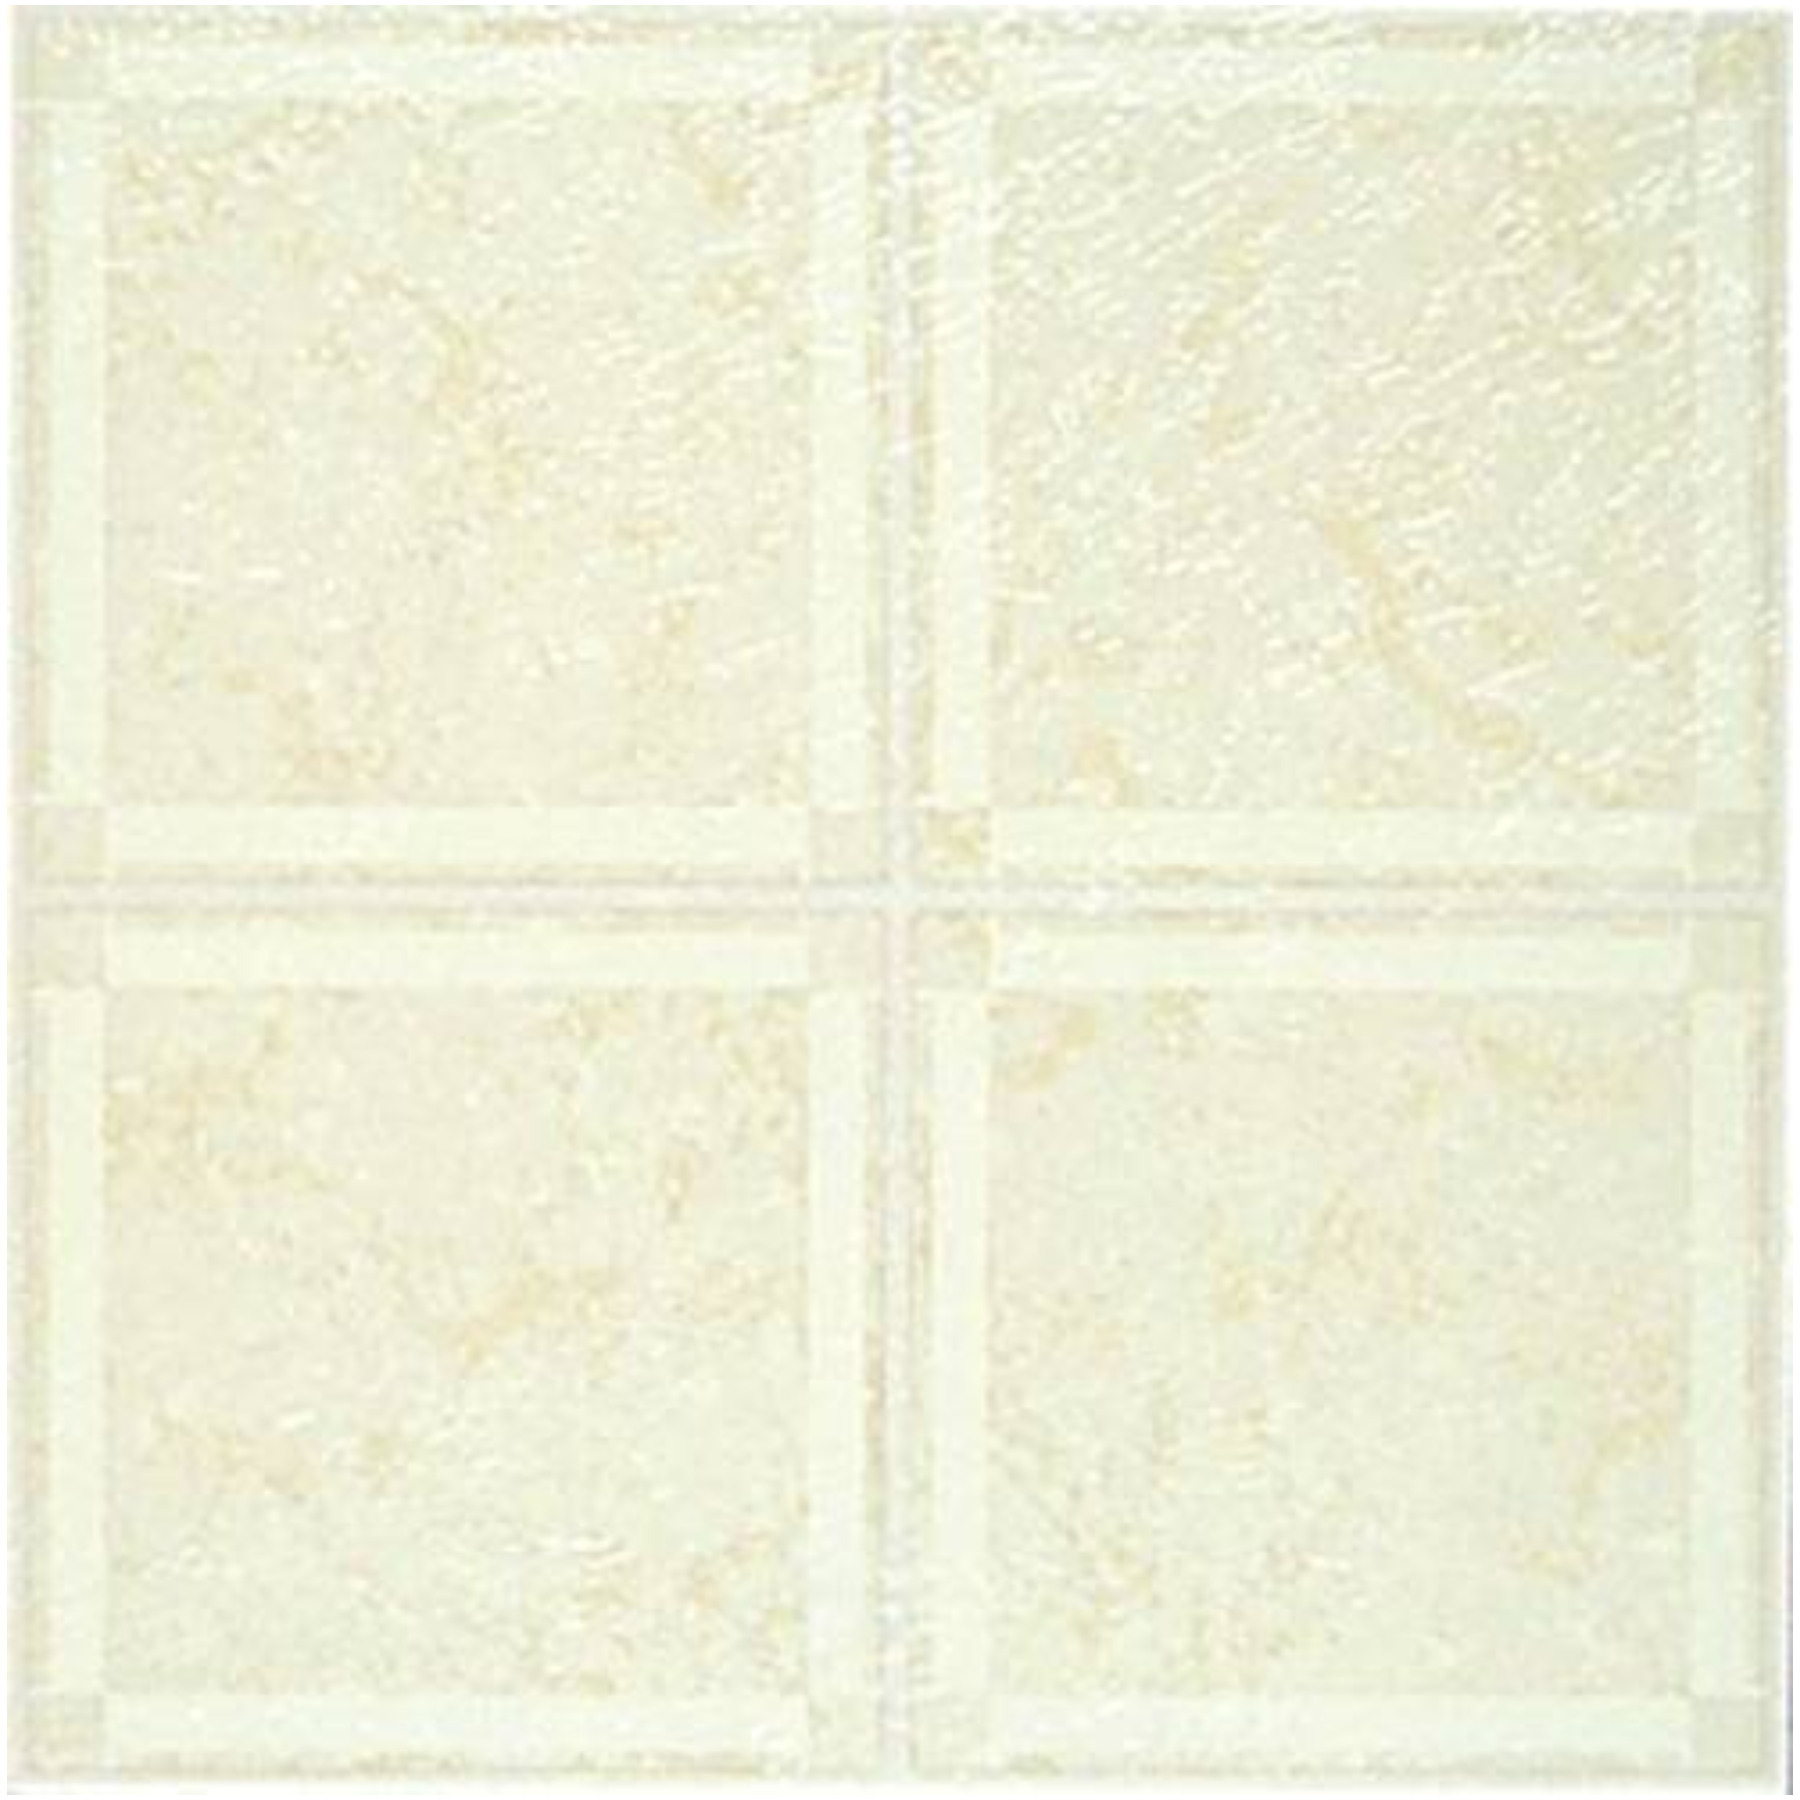 Winton Self-Adhesive Floor Tile, 12X12 In., 1.1 mm, Beige